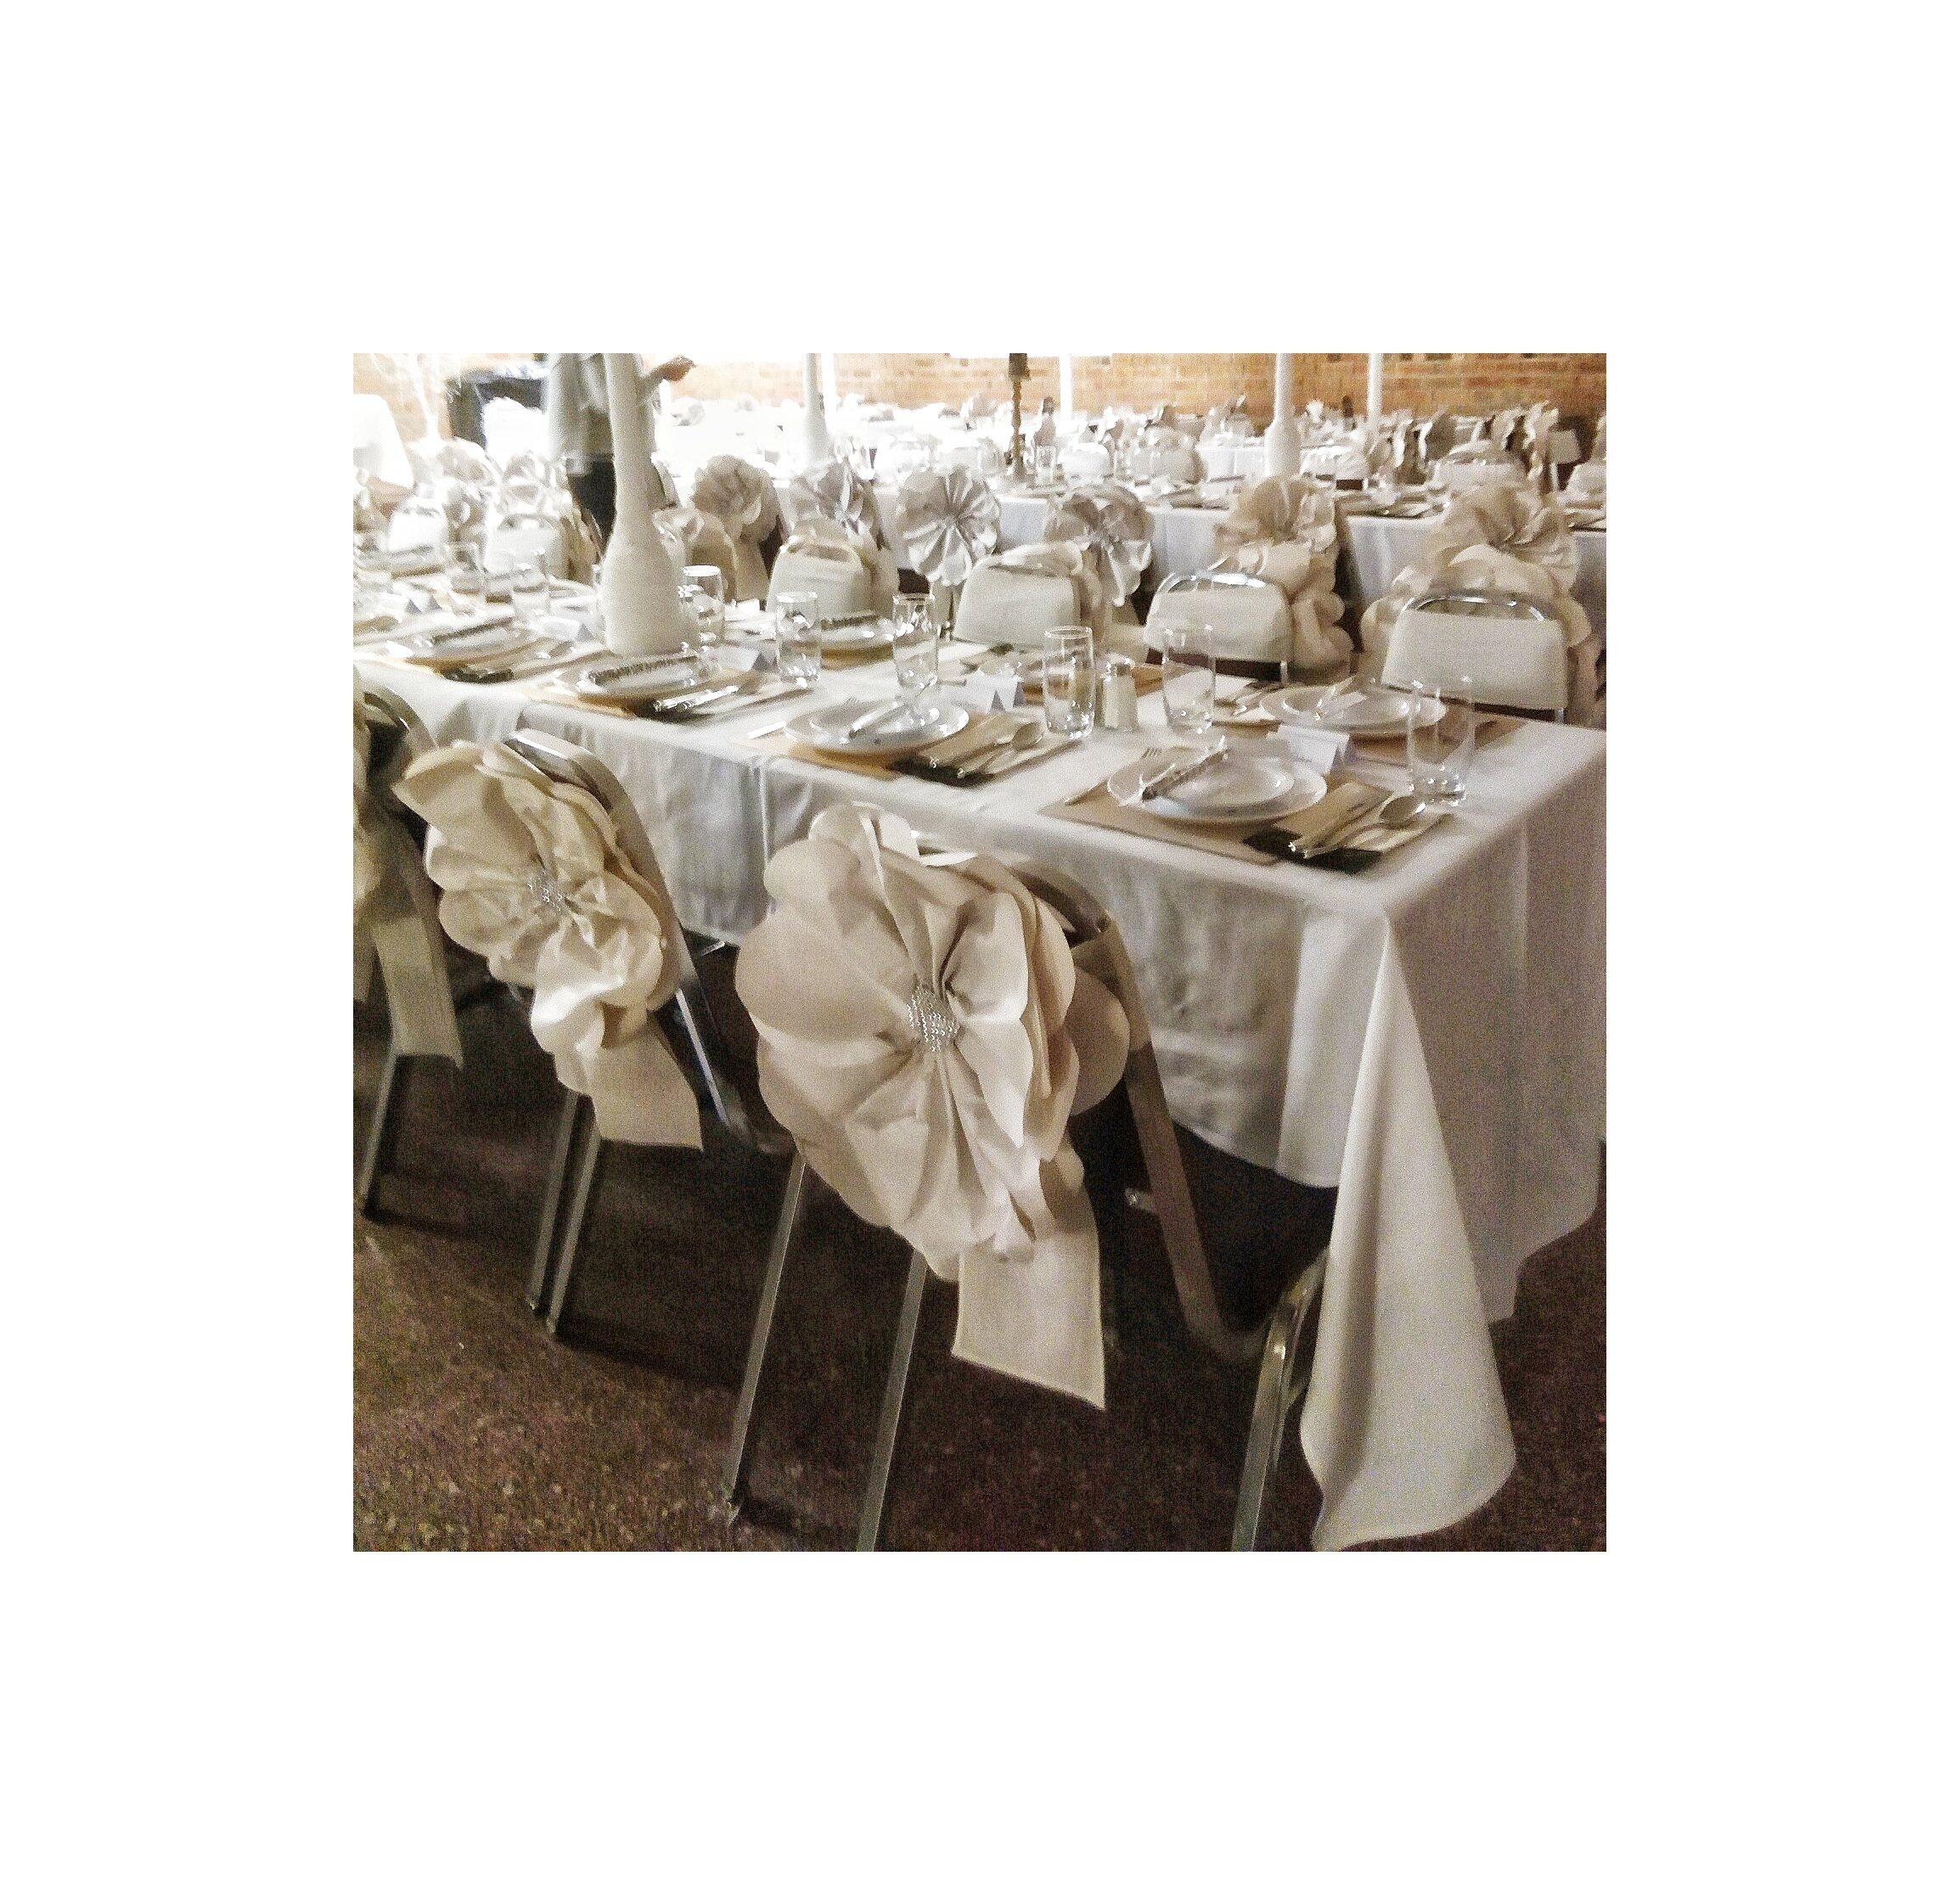 Chair Back Decor - Large newsprint flowers and muslin sashes adorn the chairs.